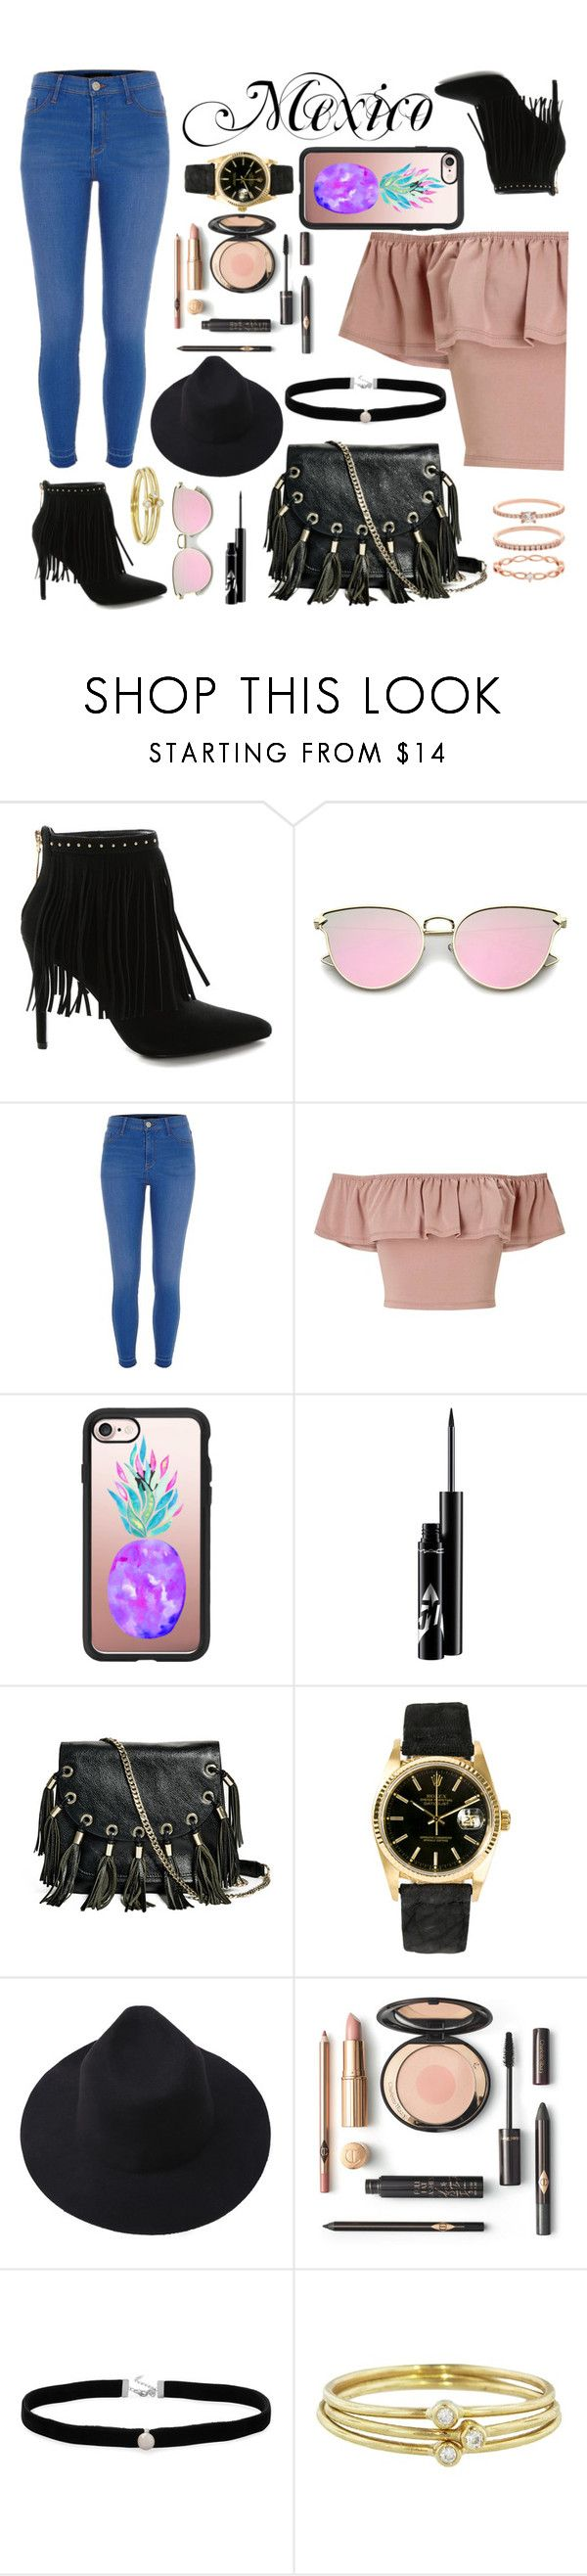 """""""Mexico City, Mexico"""" by lowlifegirl ❤ liked on Polyvore featuring Pierre Balmain, River Island, Miss Selfridge, Casetify, GUESS by Marciano, Rolex, Amanda Rose Collection, Jennifer Meyer Jewelry and Accessorize"""